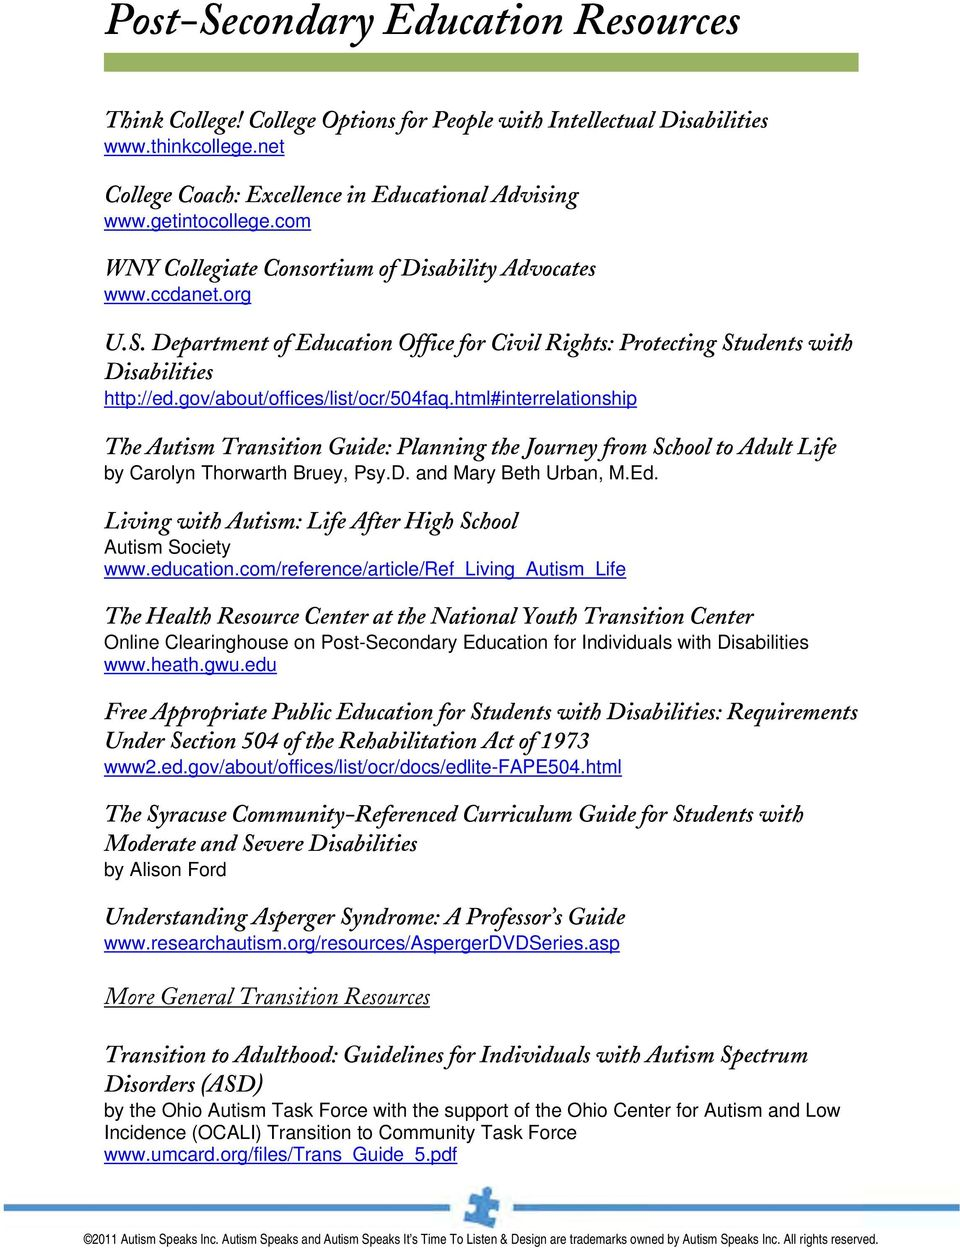 gov/about/offices/list/ocr/504faq.html#interrelationship The Autism Transition Guide: Planning the Journey from School to Adult Life by Carolyn Thorwarth Bruey, Psy.D. and Mary Beth Urban, M.Ed.